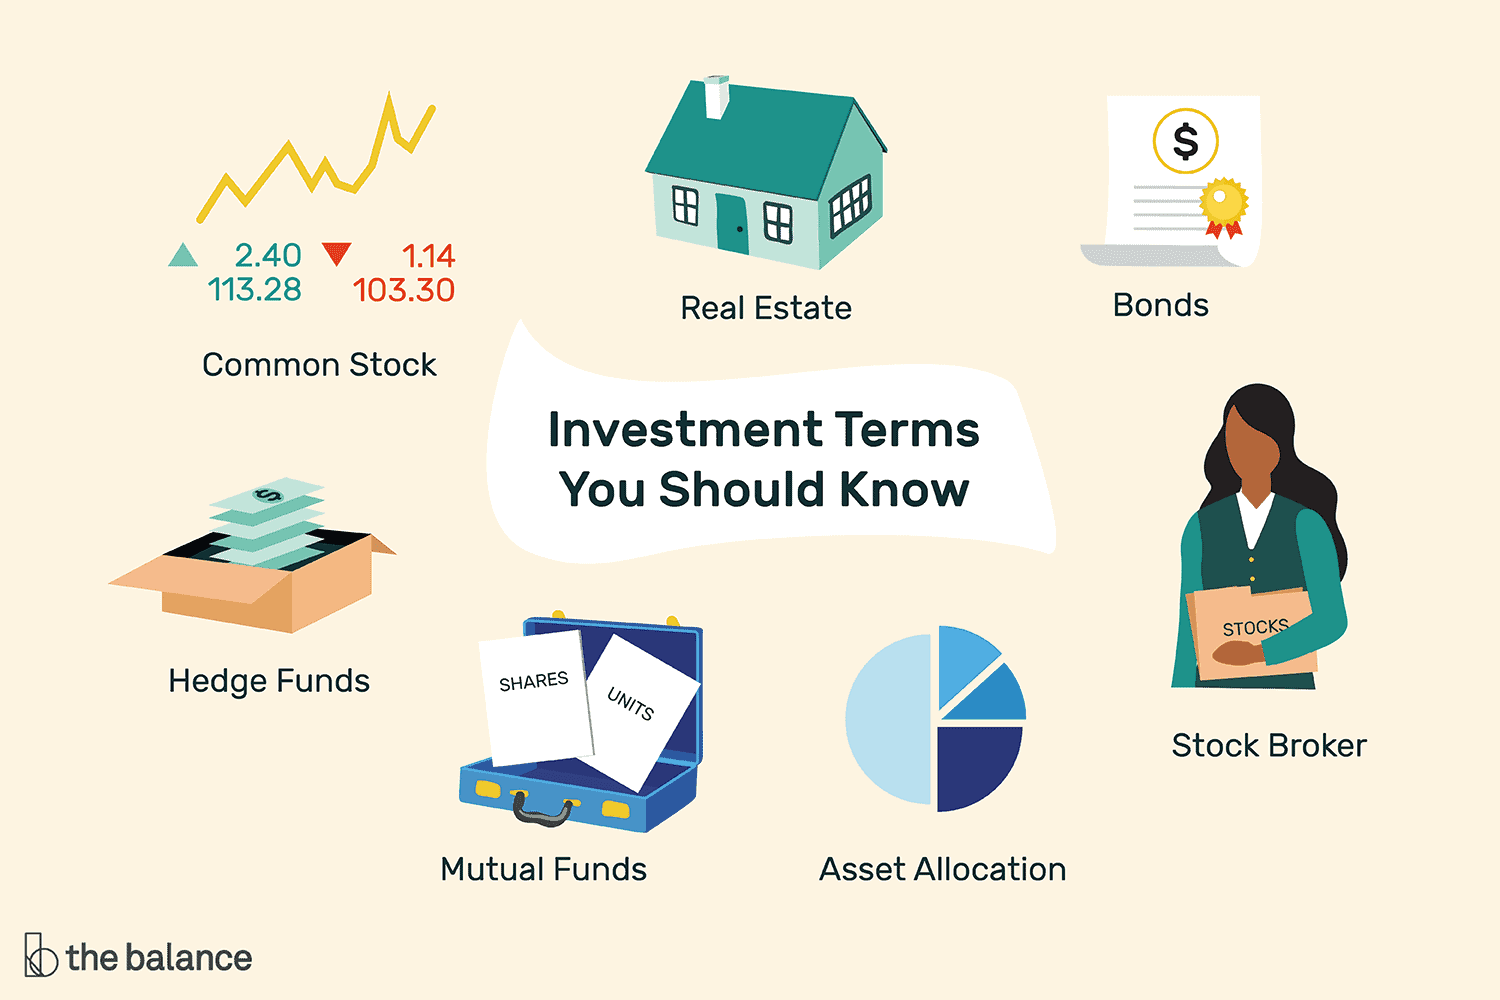 Investing bonds need know